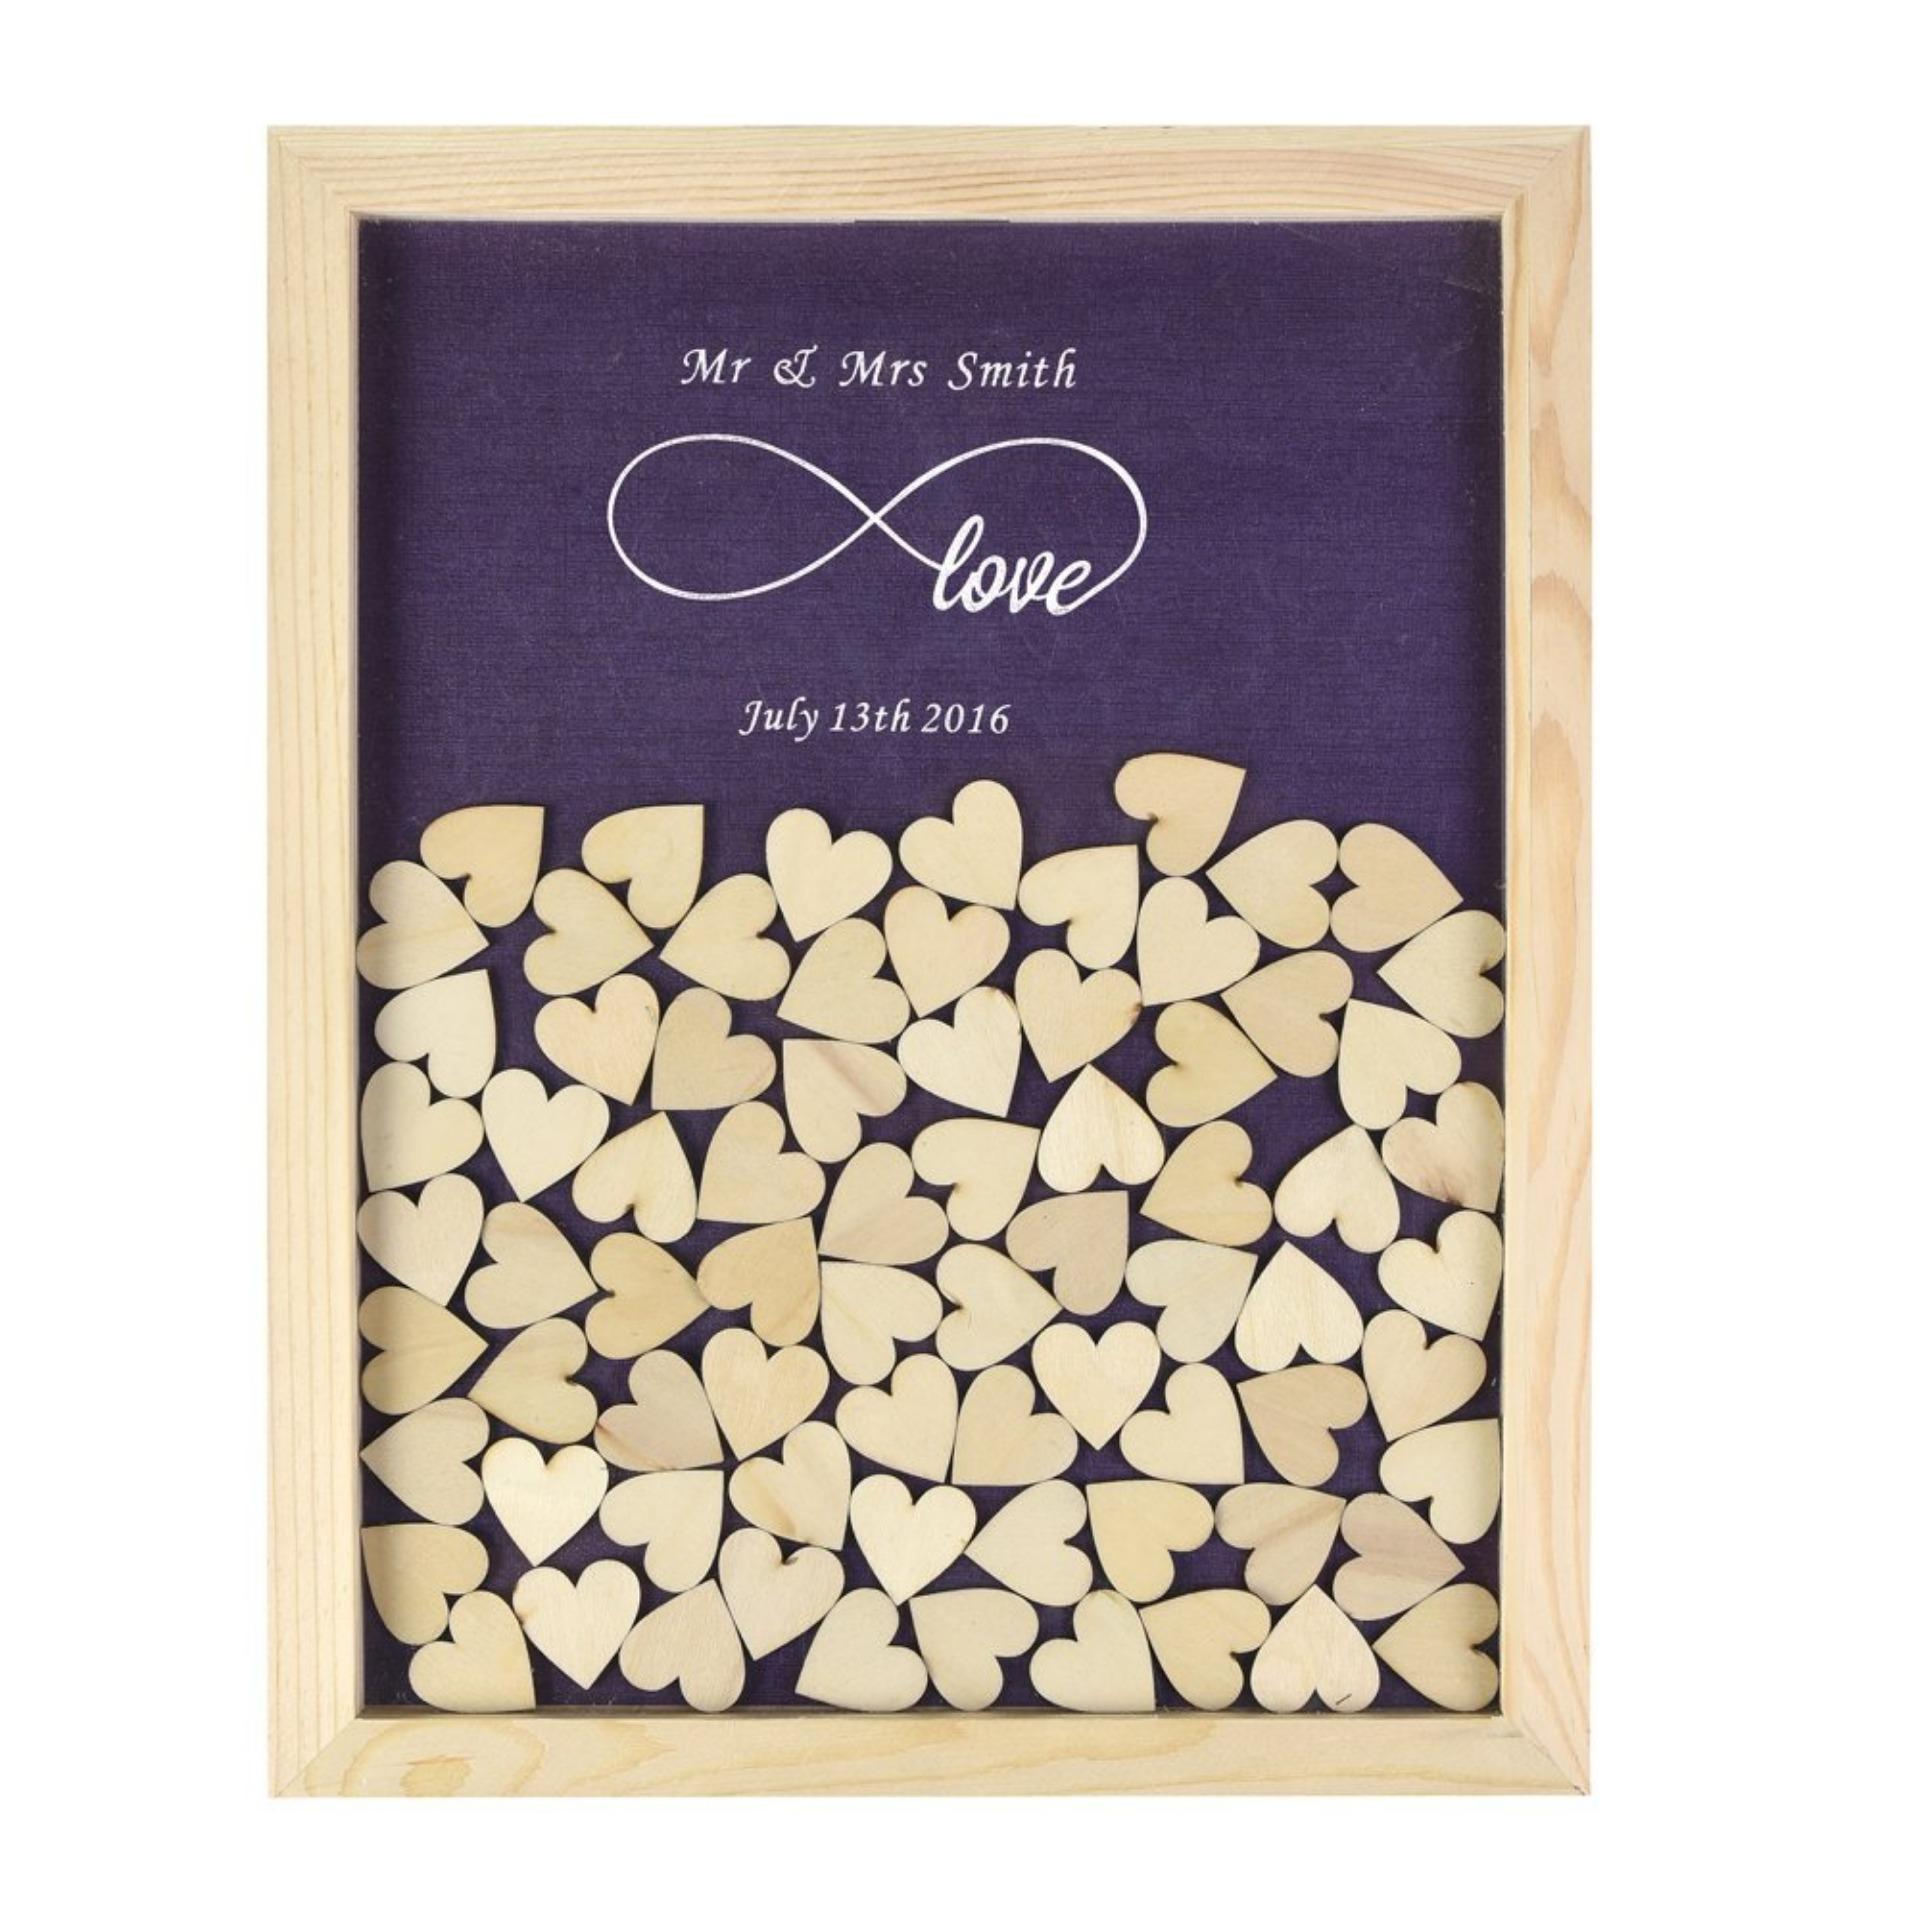 philippines personalized wooden frame wedding guest book